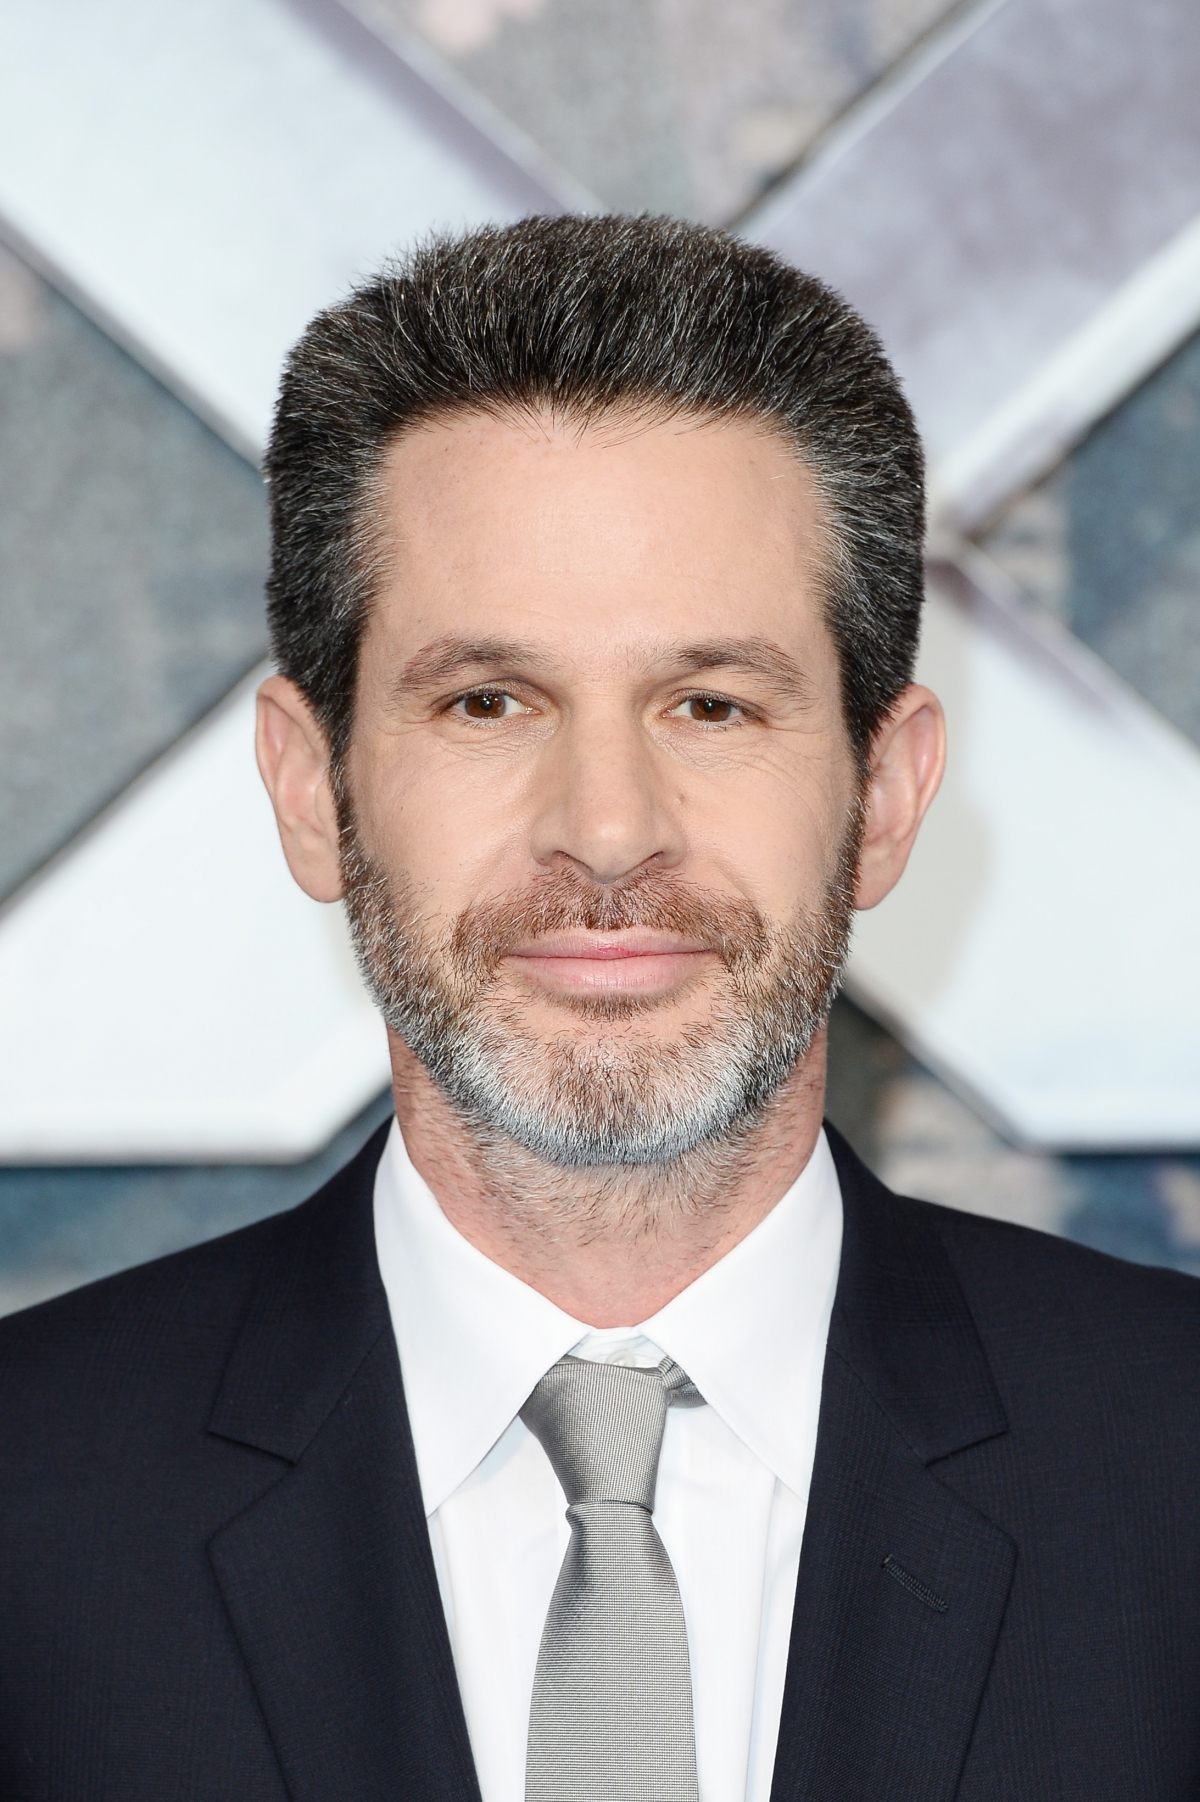 simon kinberg emailsimon kinberg net worth, simon kinberg x-men, simon kinberg interview, simon kinberg instagram, simon kinberg imdb, simon kinberg twitter, simon kinberg contact, simon kinberg, simon kinberg star wars, simon kinberg deadpool, simon kinberg facebook, simon kinberg wikipedia, simon kinberg wife, simon kinberg josh trank, simon kinberg wiki, simon kinberg the martian, simon kinberg movies, simon kinberg email, simon kinberg girlfriend, simon kinberg married